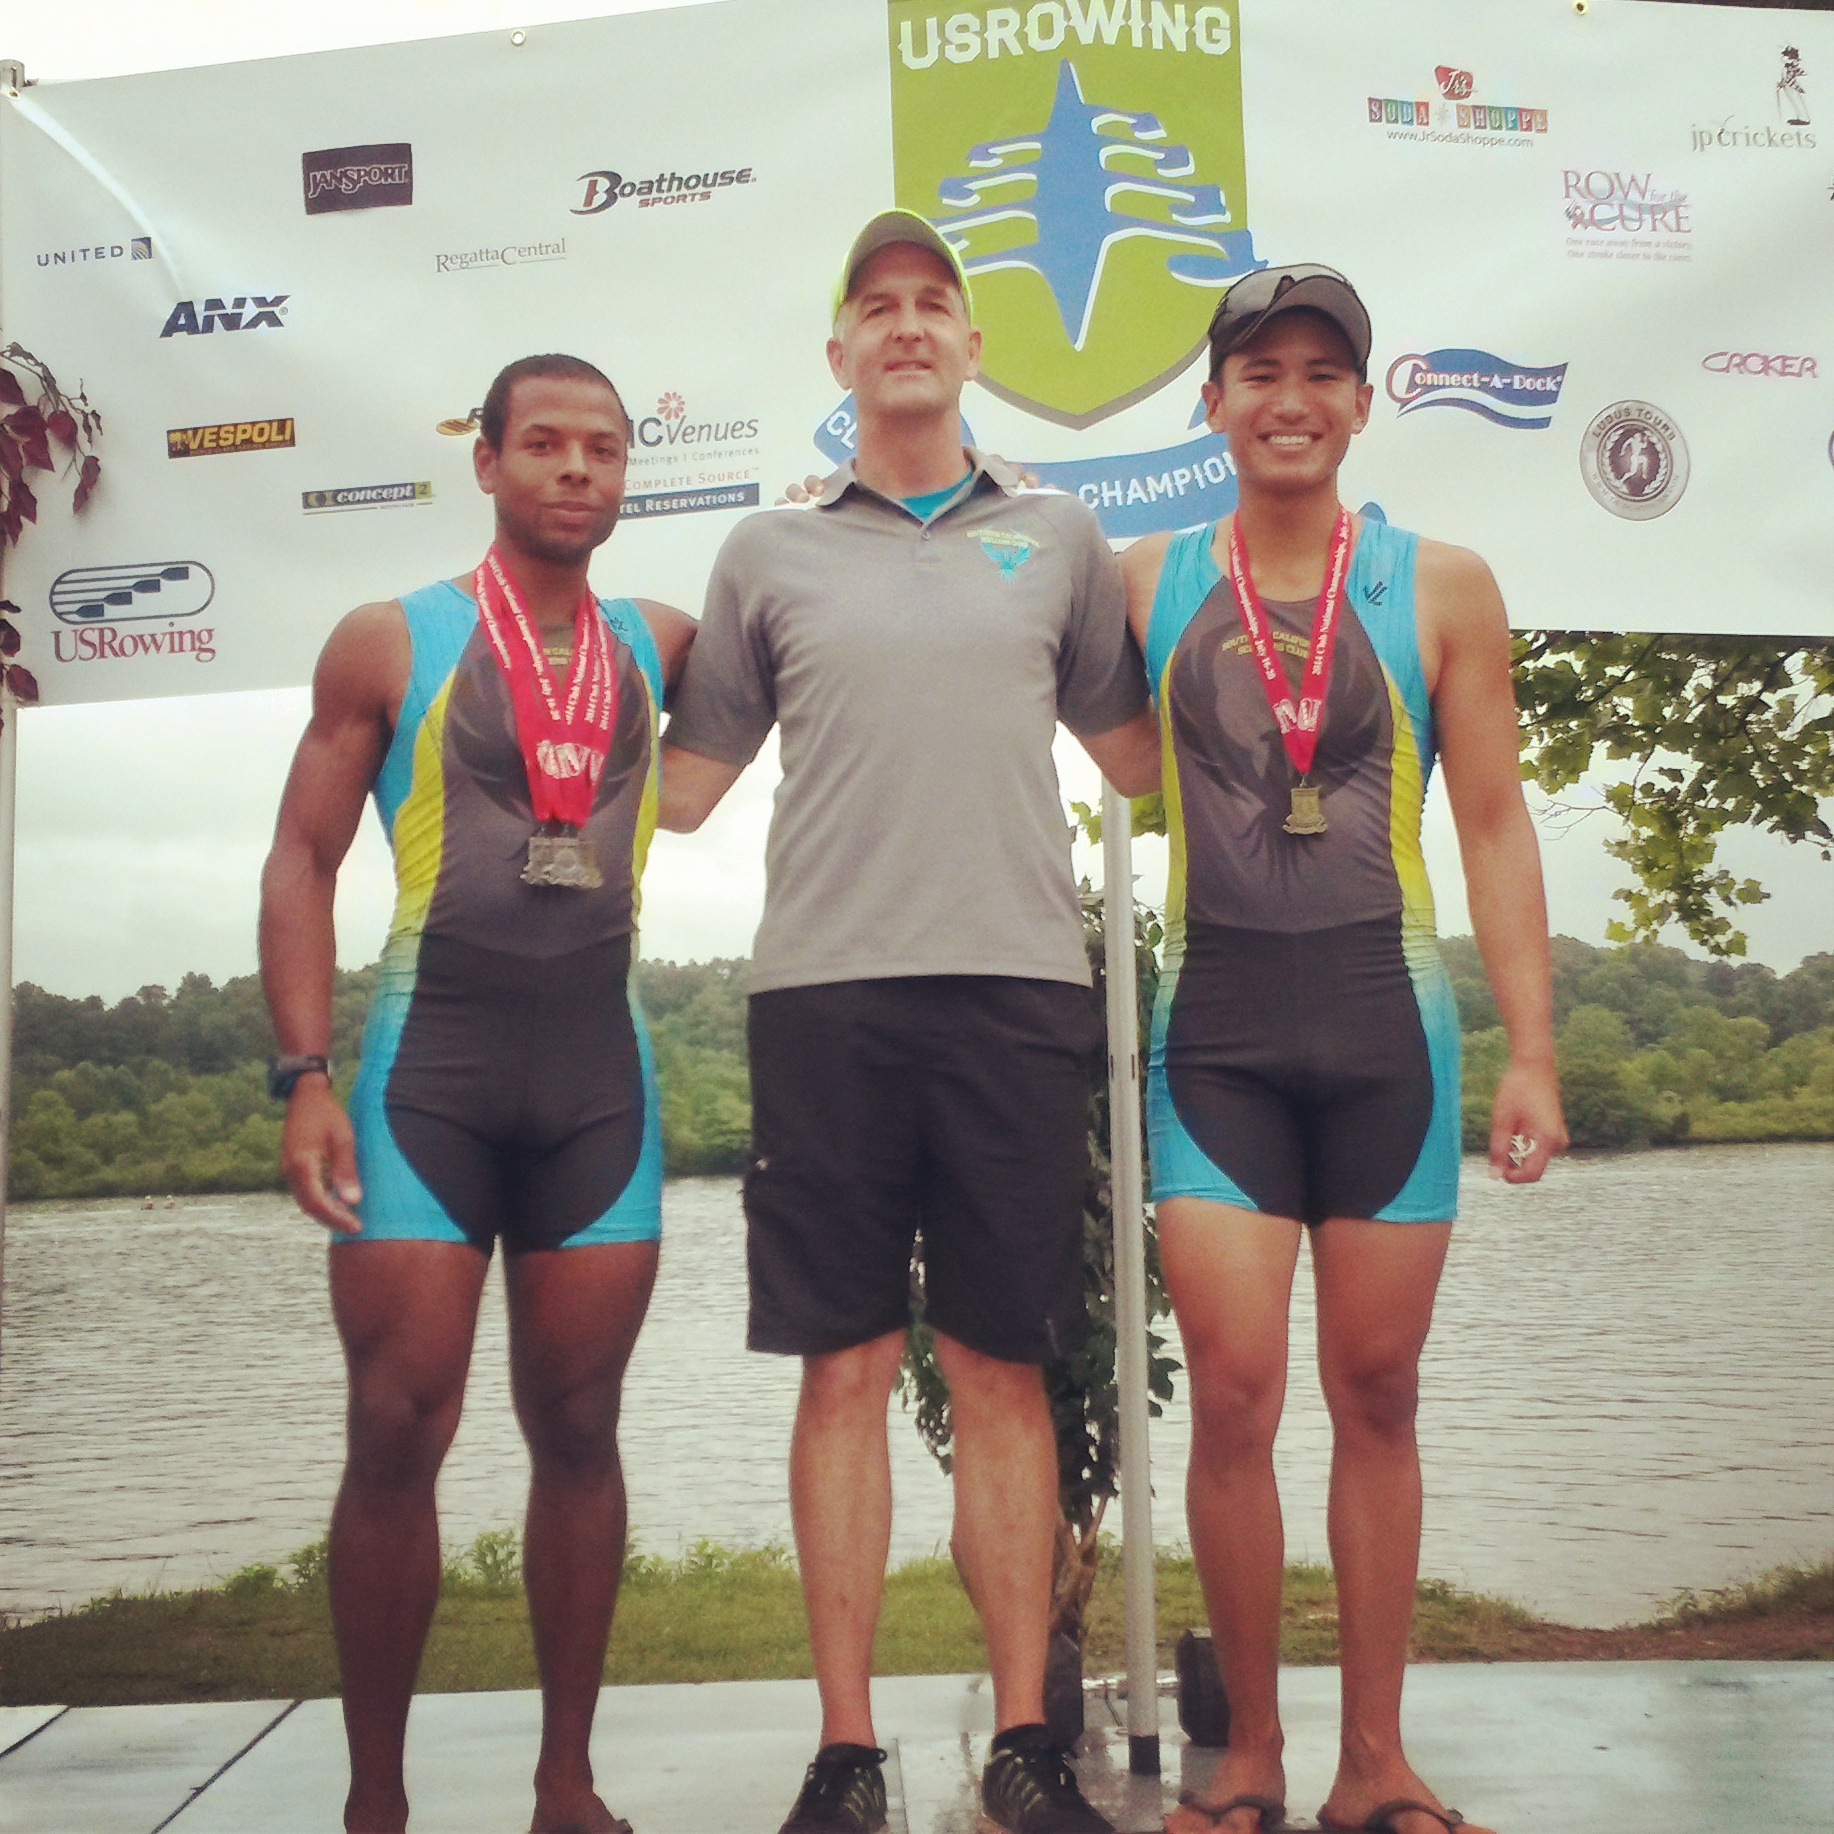 One of my coaches, Dan McGill (center), my Int. Lwt 2X partner, Derrick, and Me. Proudly wearing my medals (2 x silver, 1 x gold)